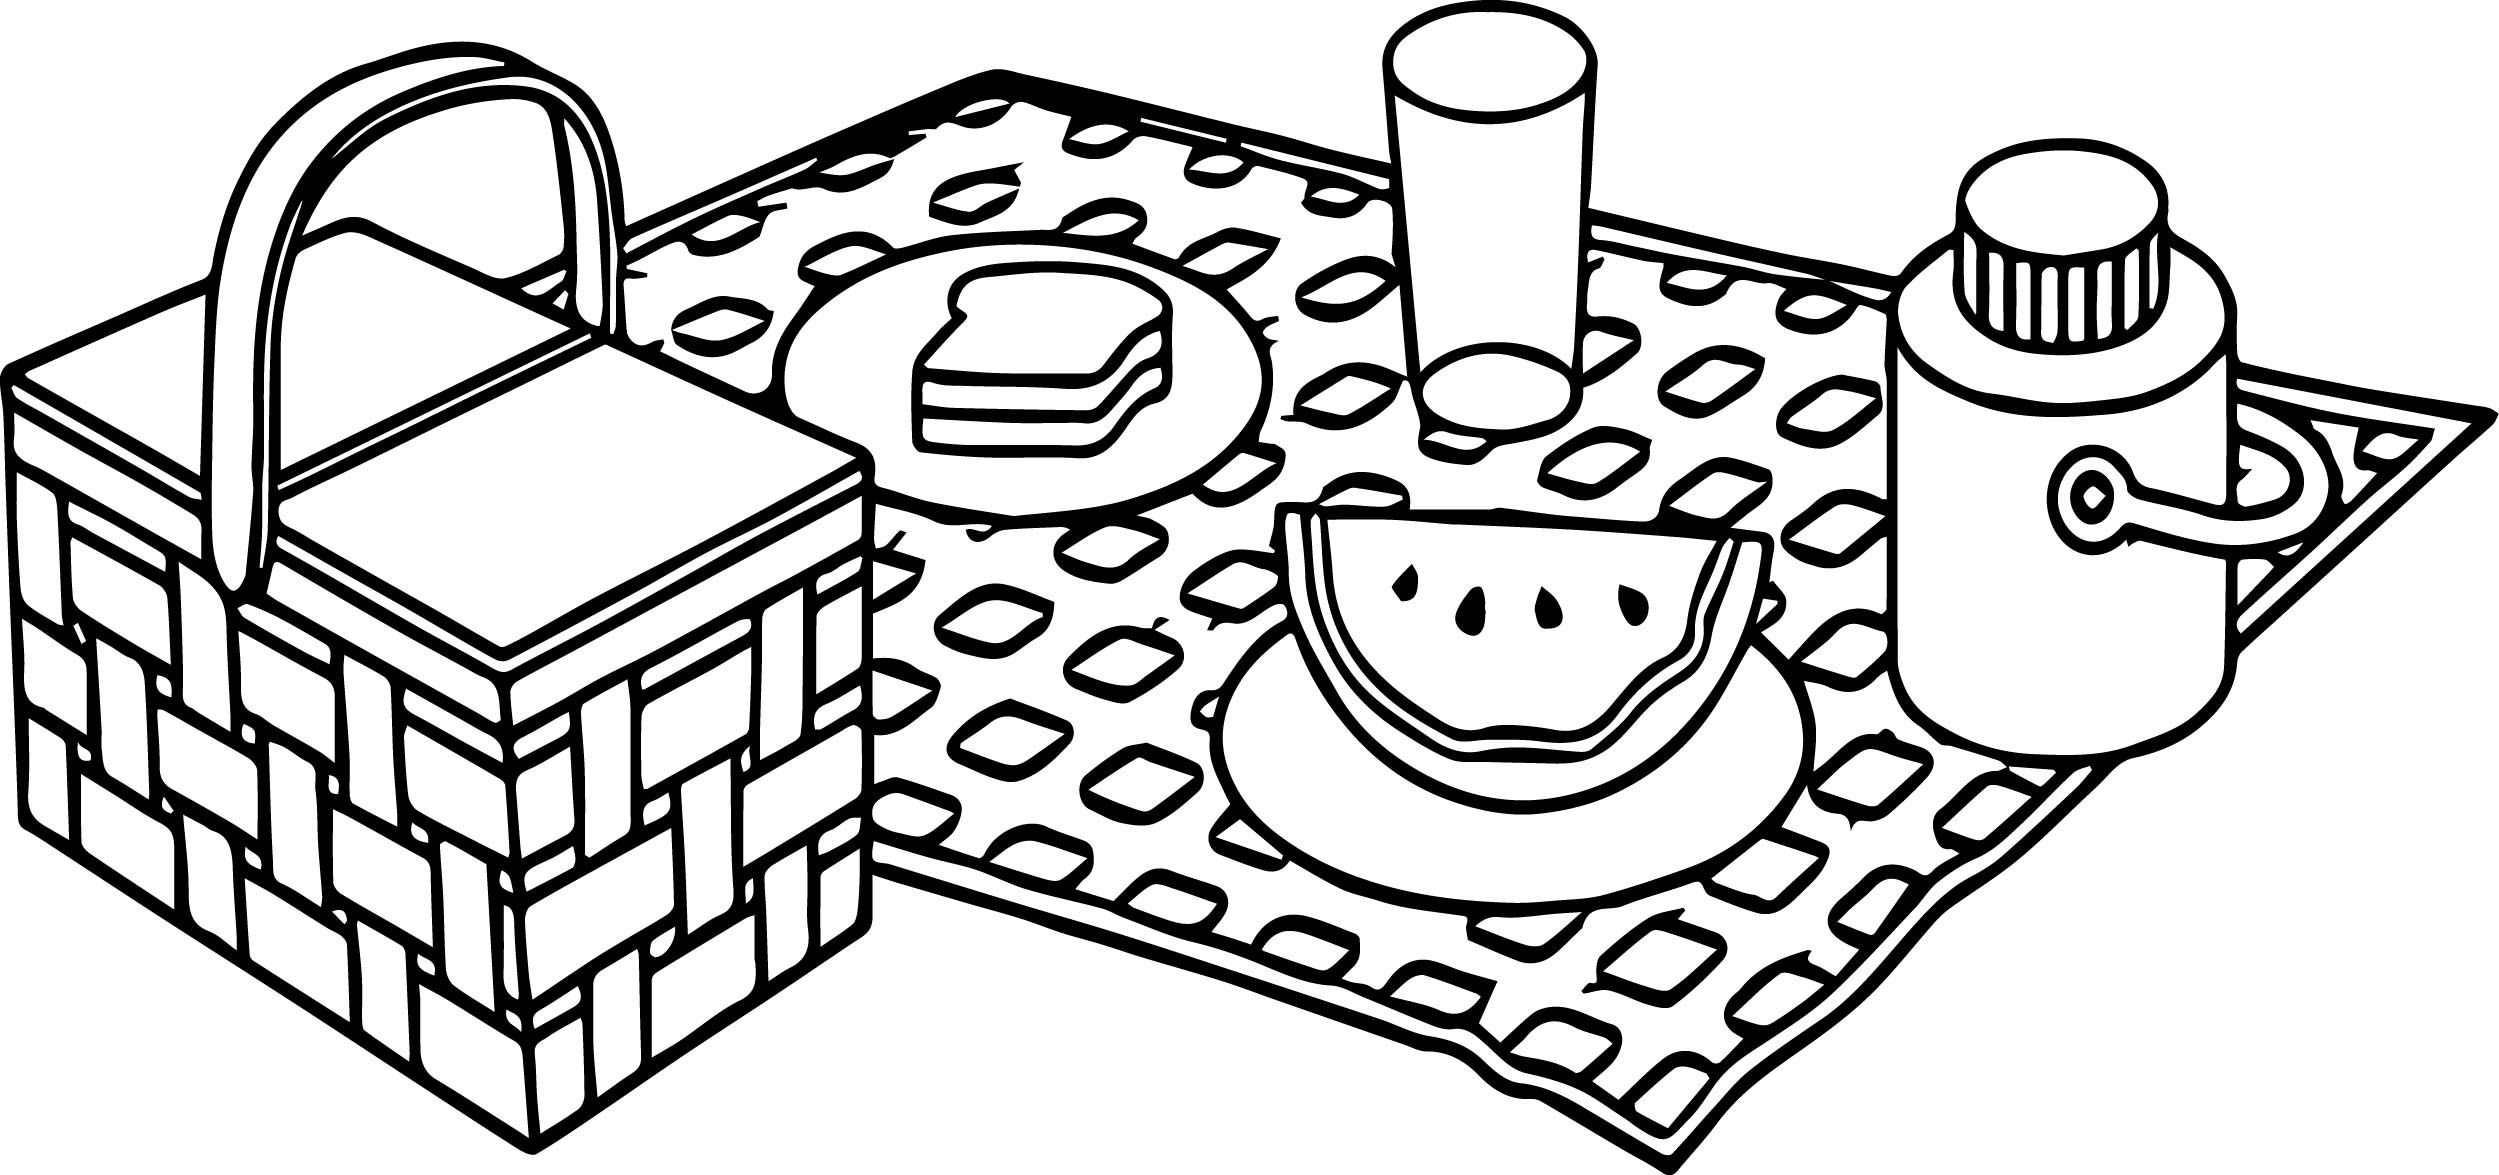 coloring picture food thanksgiving food coloring pages getcoloringpagescom picture coloring food